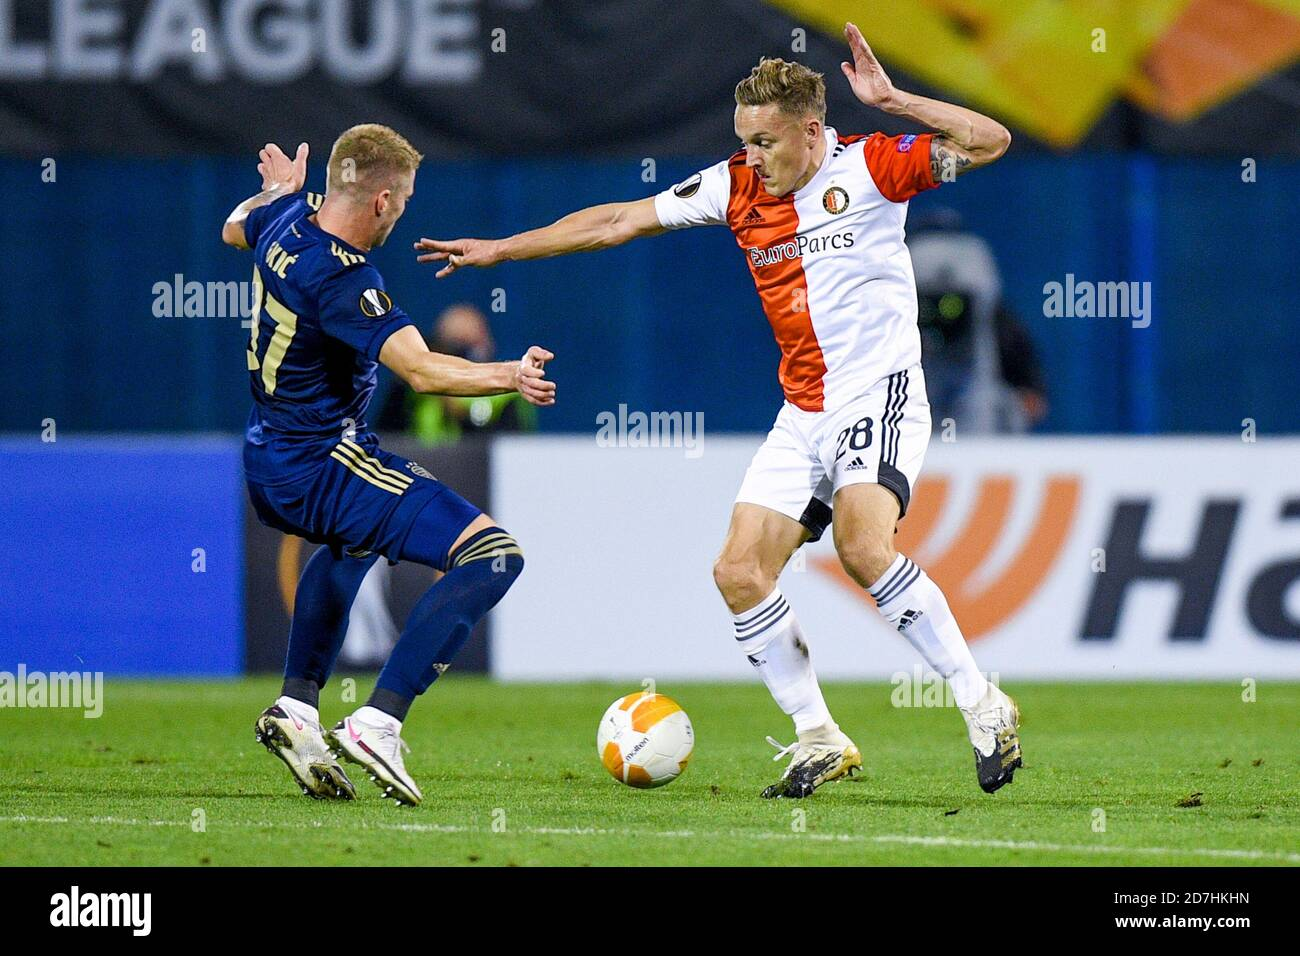 Zagreb Croatia October 22 Kristijan Jakic Of Dinamo Zagreb Jens Toornstra Of Feyenoord During The Uefa Europa League Match Between Dinamo Zagrab Stock Photo Alamy